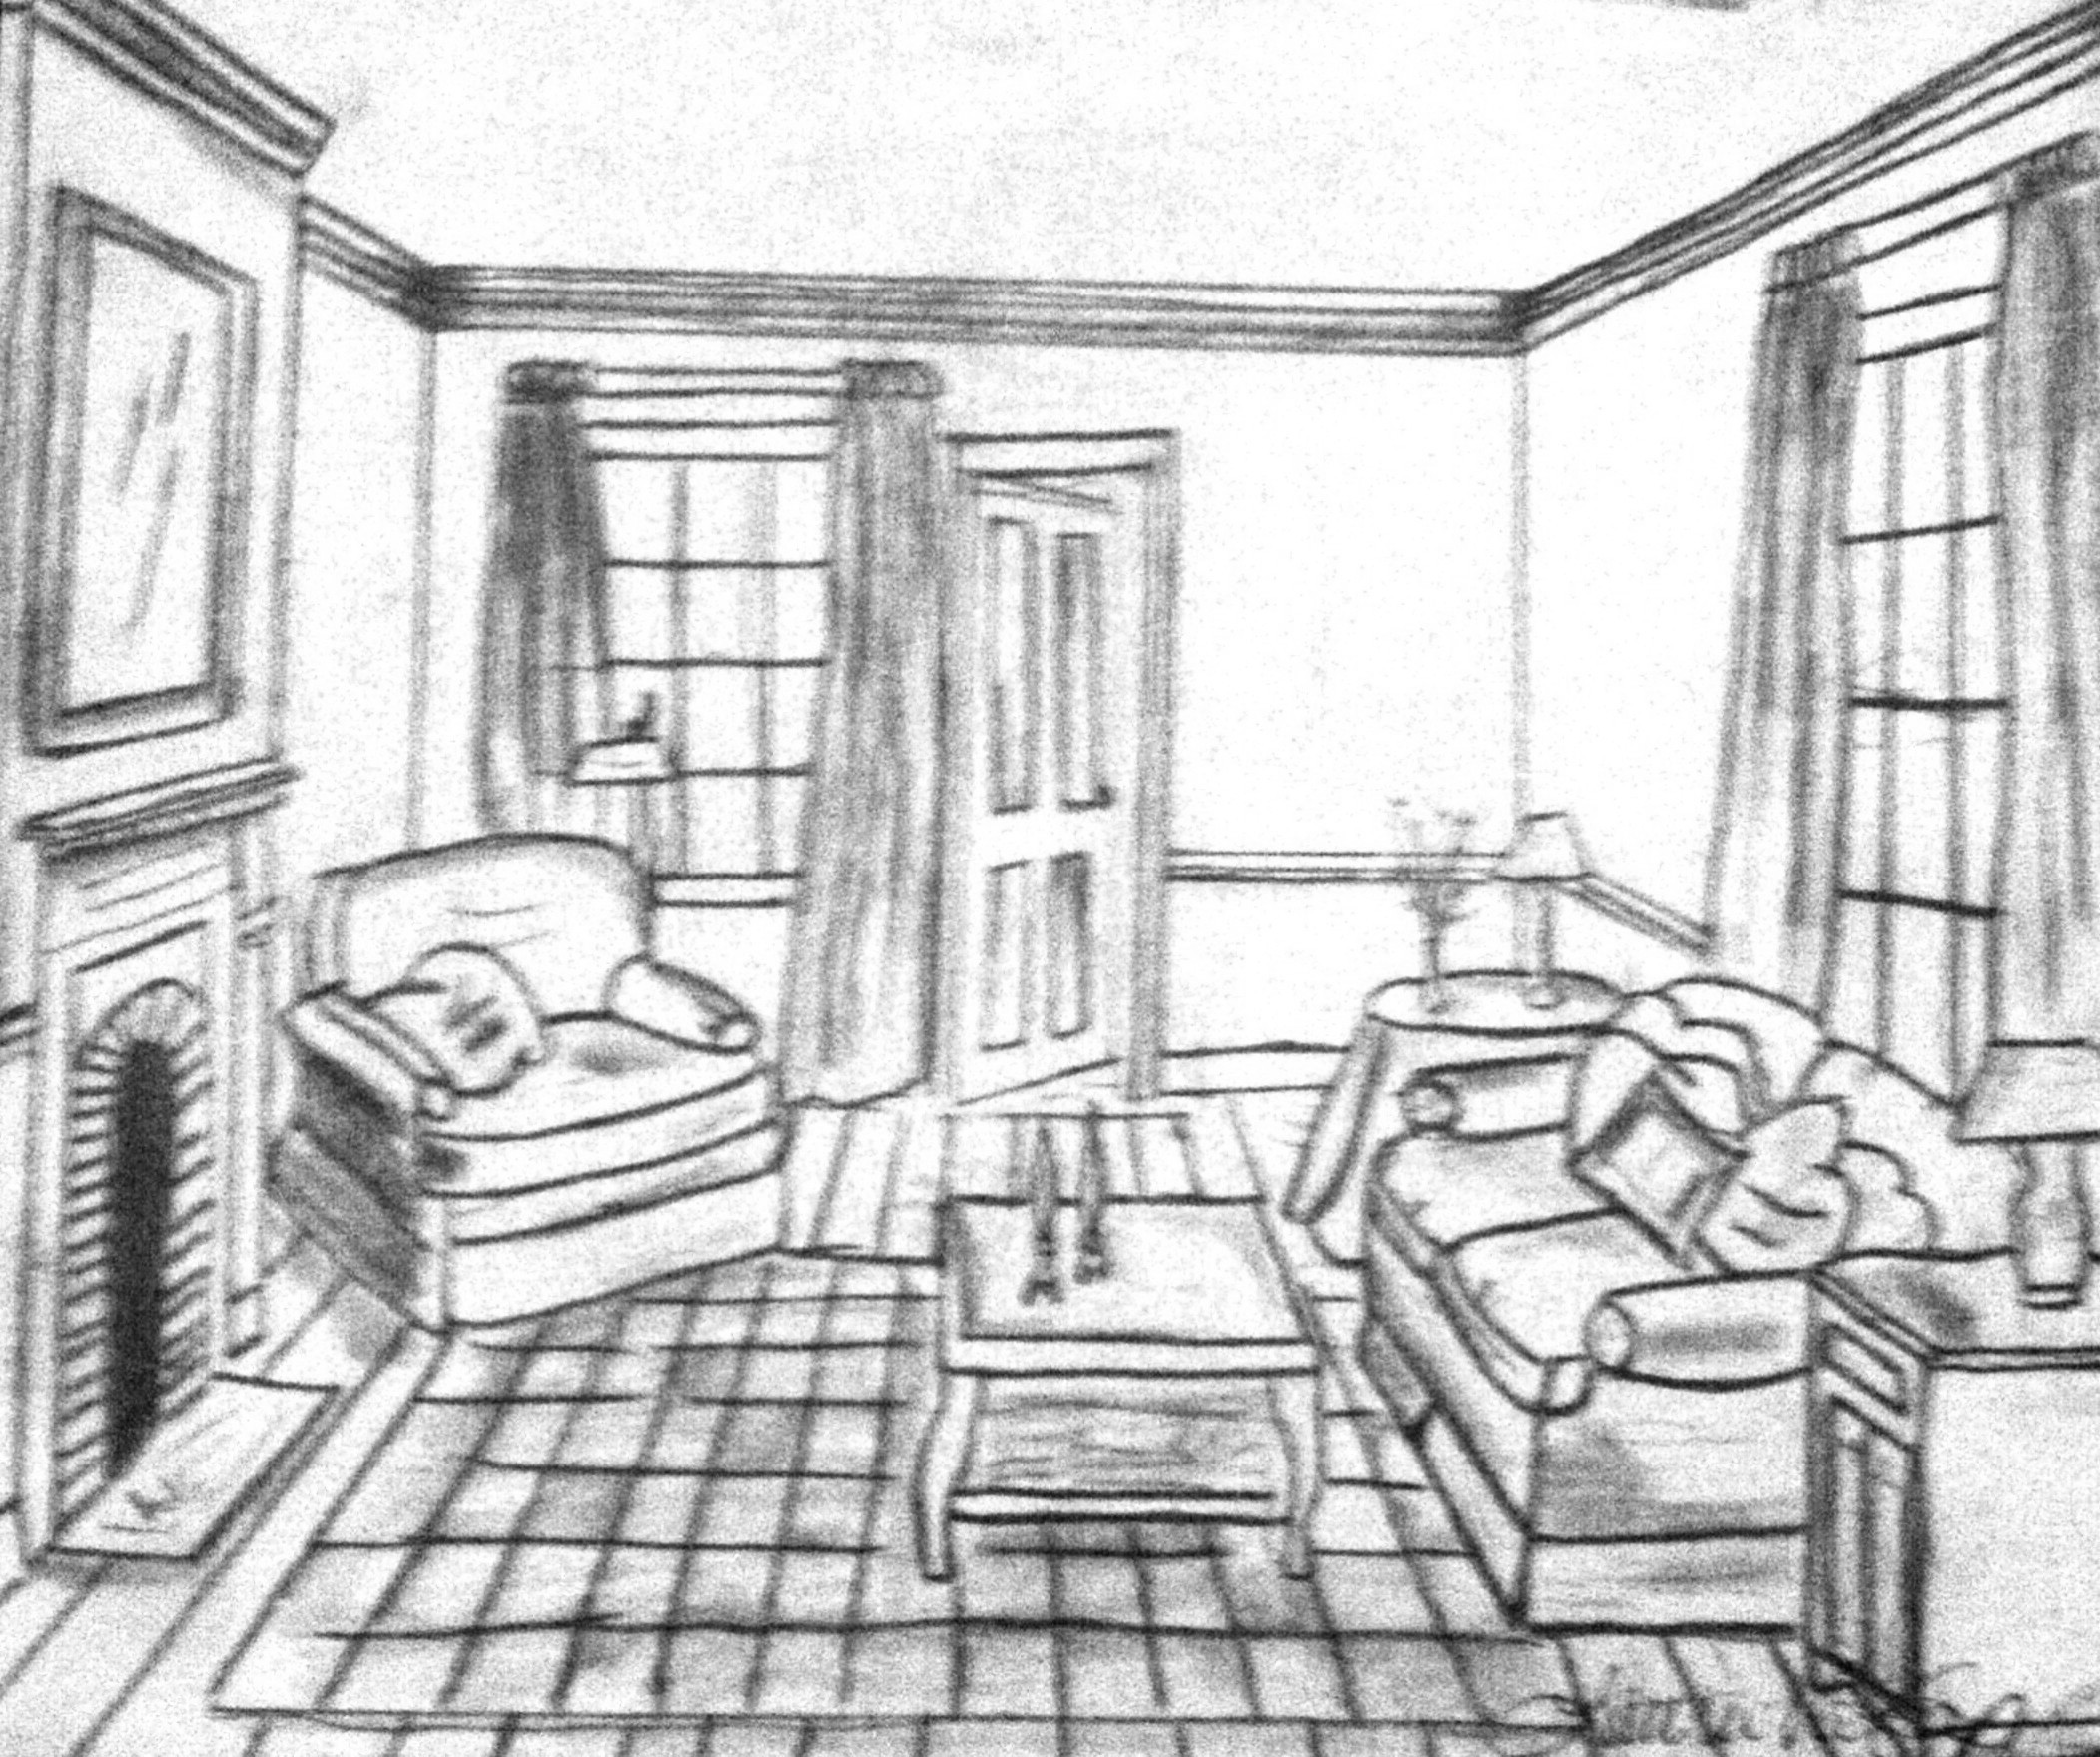 Living Room Living Room Drawing pictures drawing in bedrooms interior design qarmazi basic living room sketch room